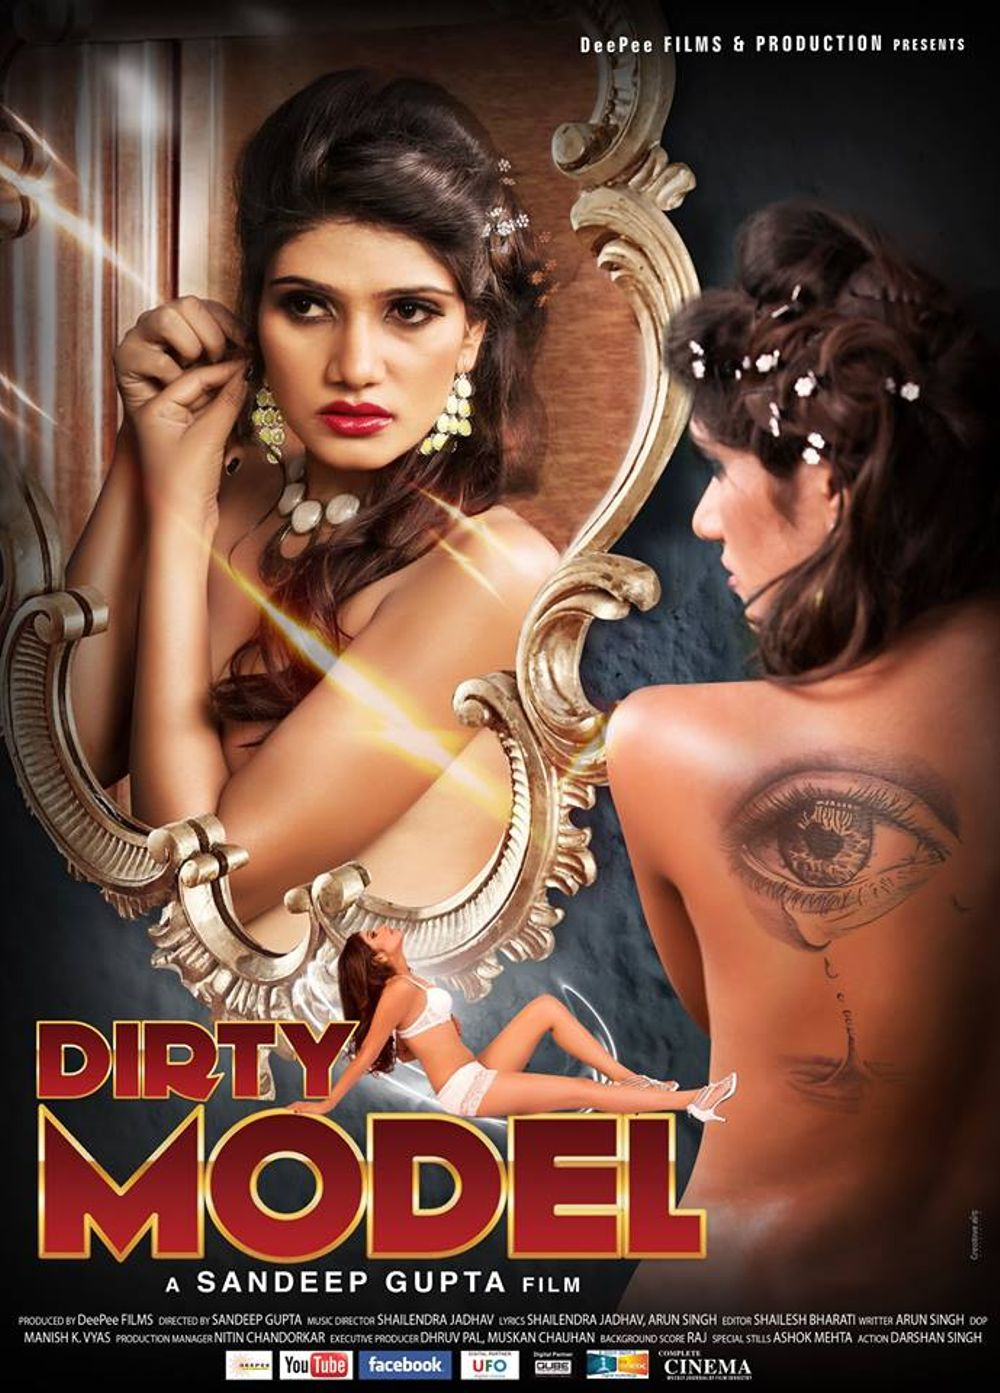 Dirty Model 2015 Hindi Hot 720p HDRip 1GB Download